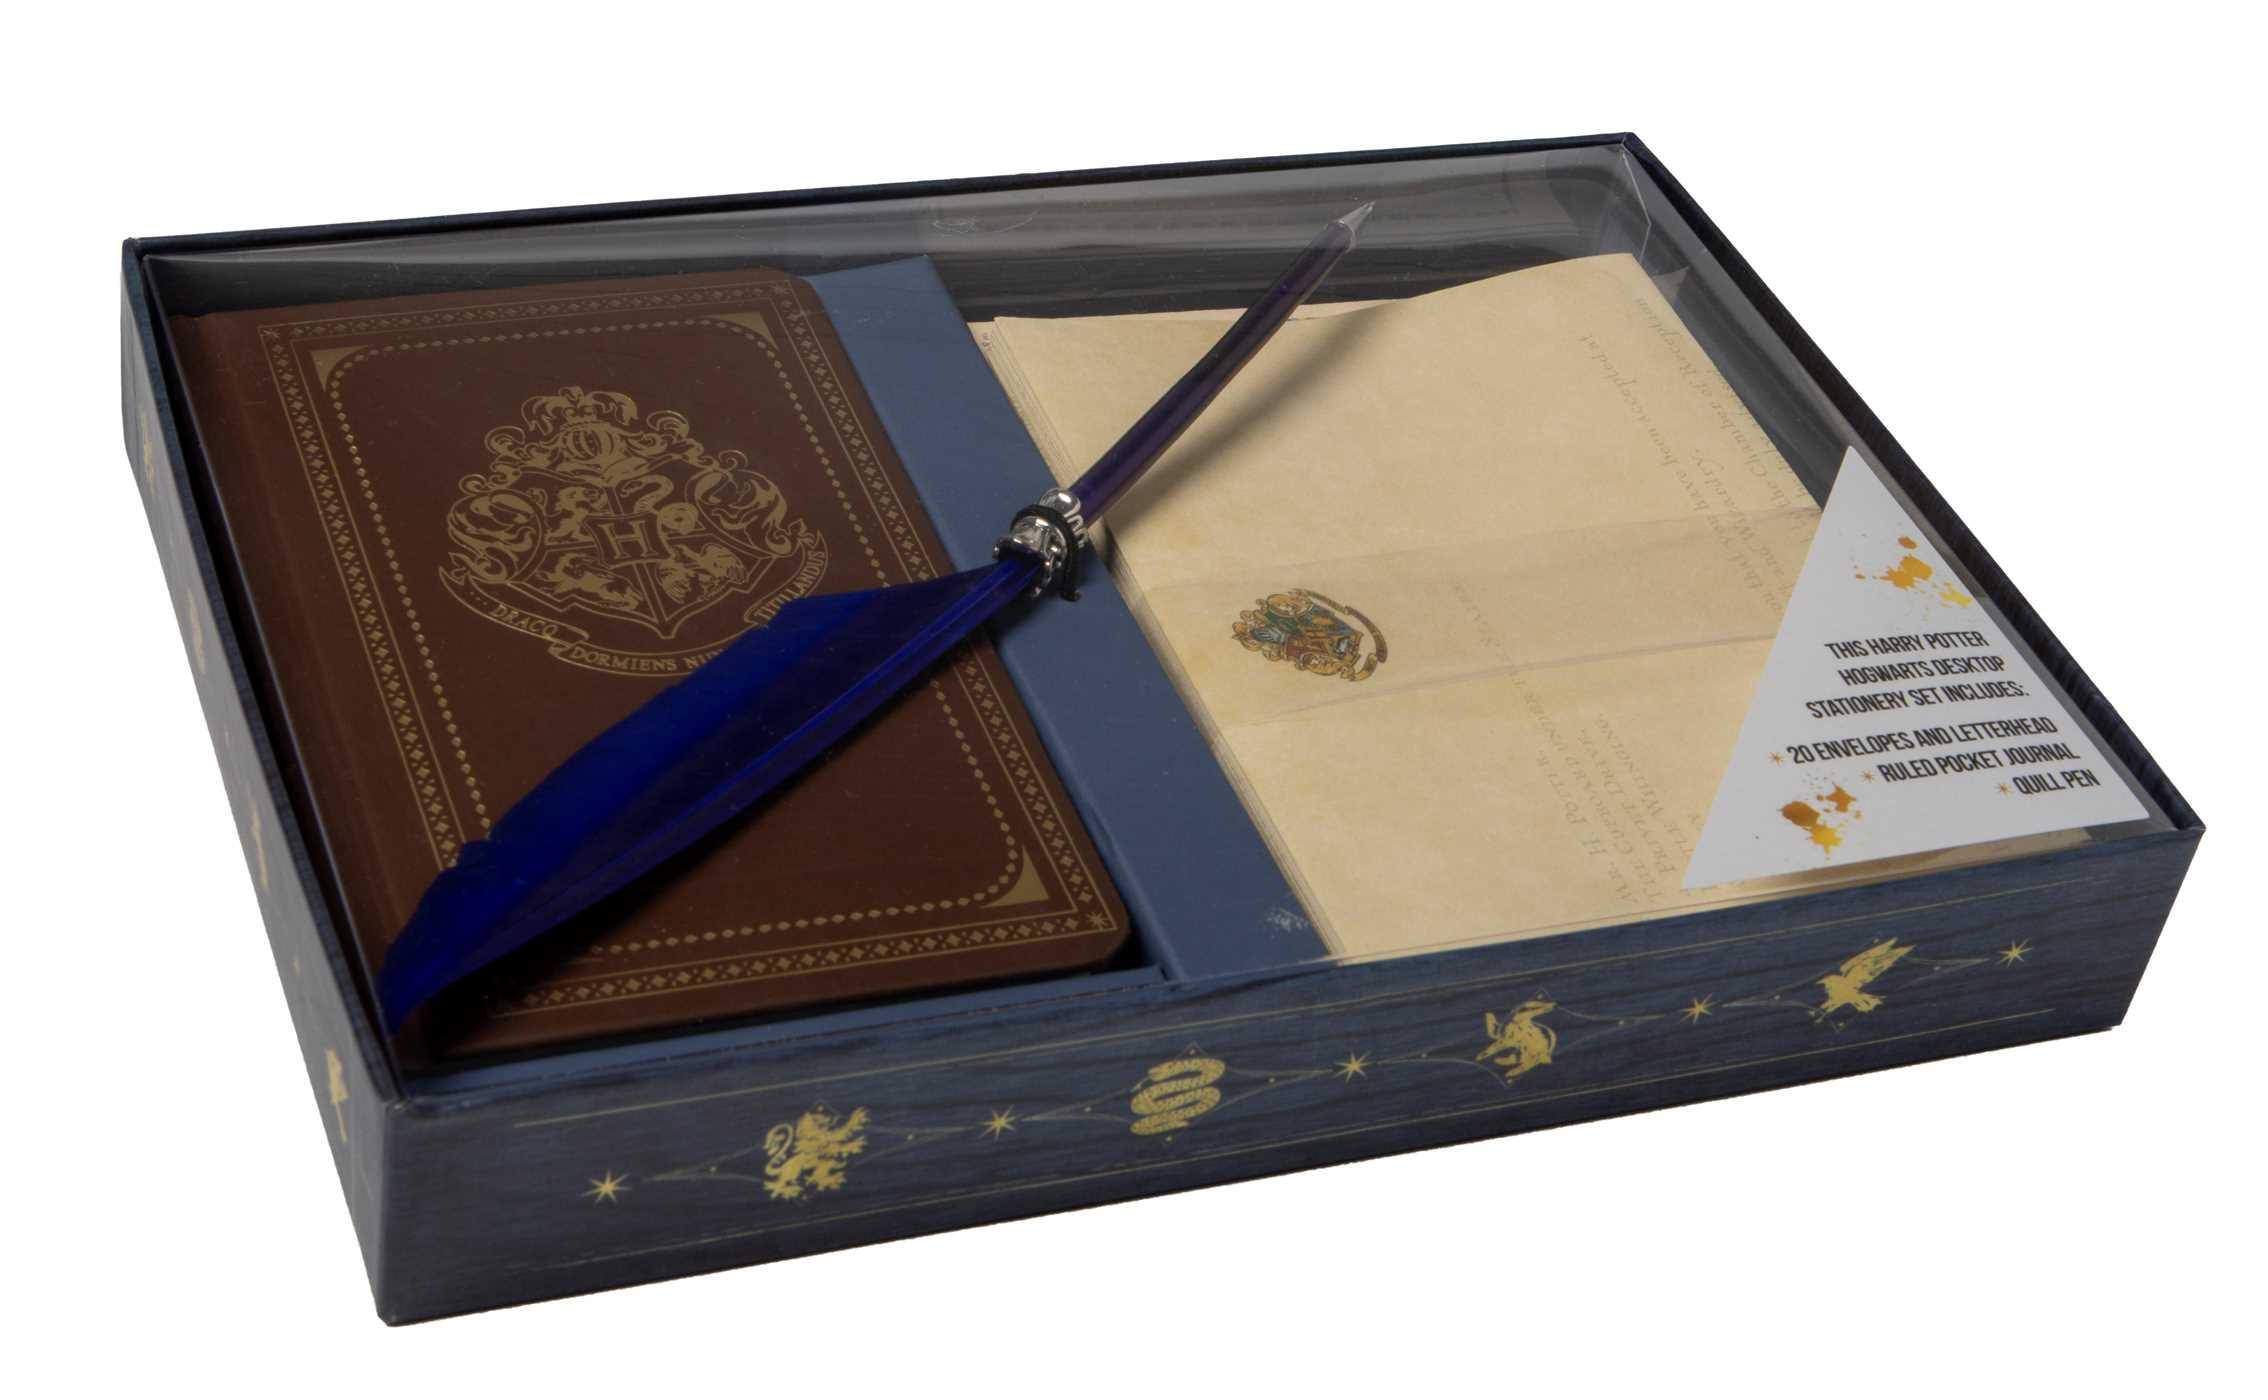 Harry Potter Hogwarts School Of Witchcraft And Wizardry Desktop Stationery  Set With Pen 9781683832546 Hr ...